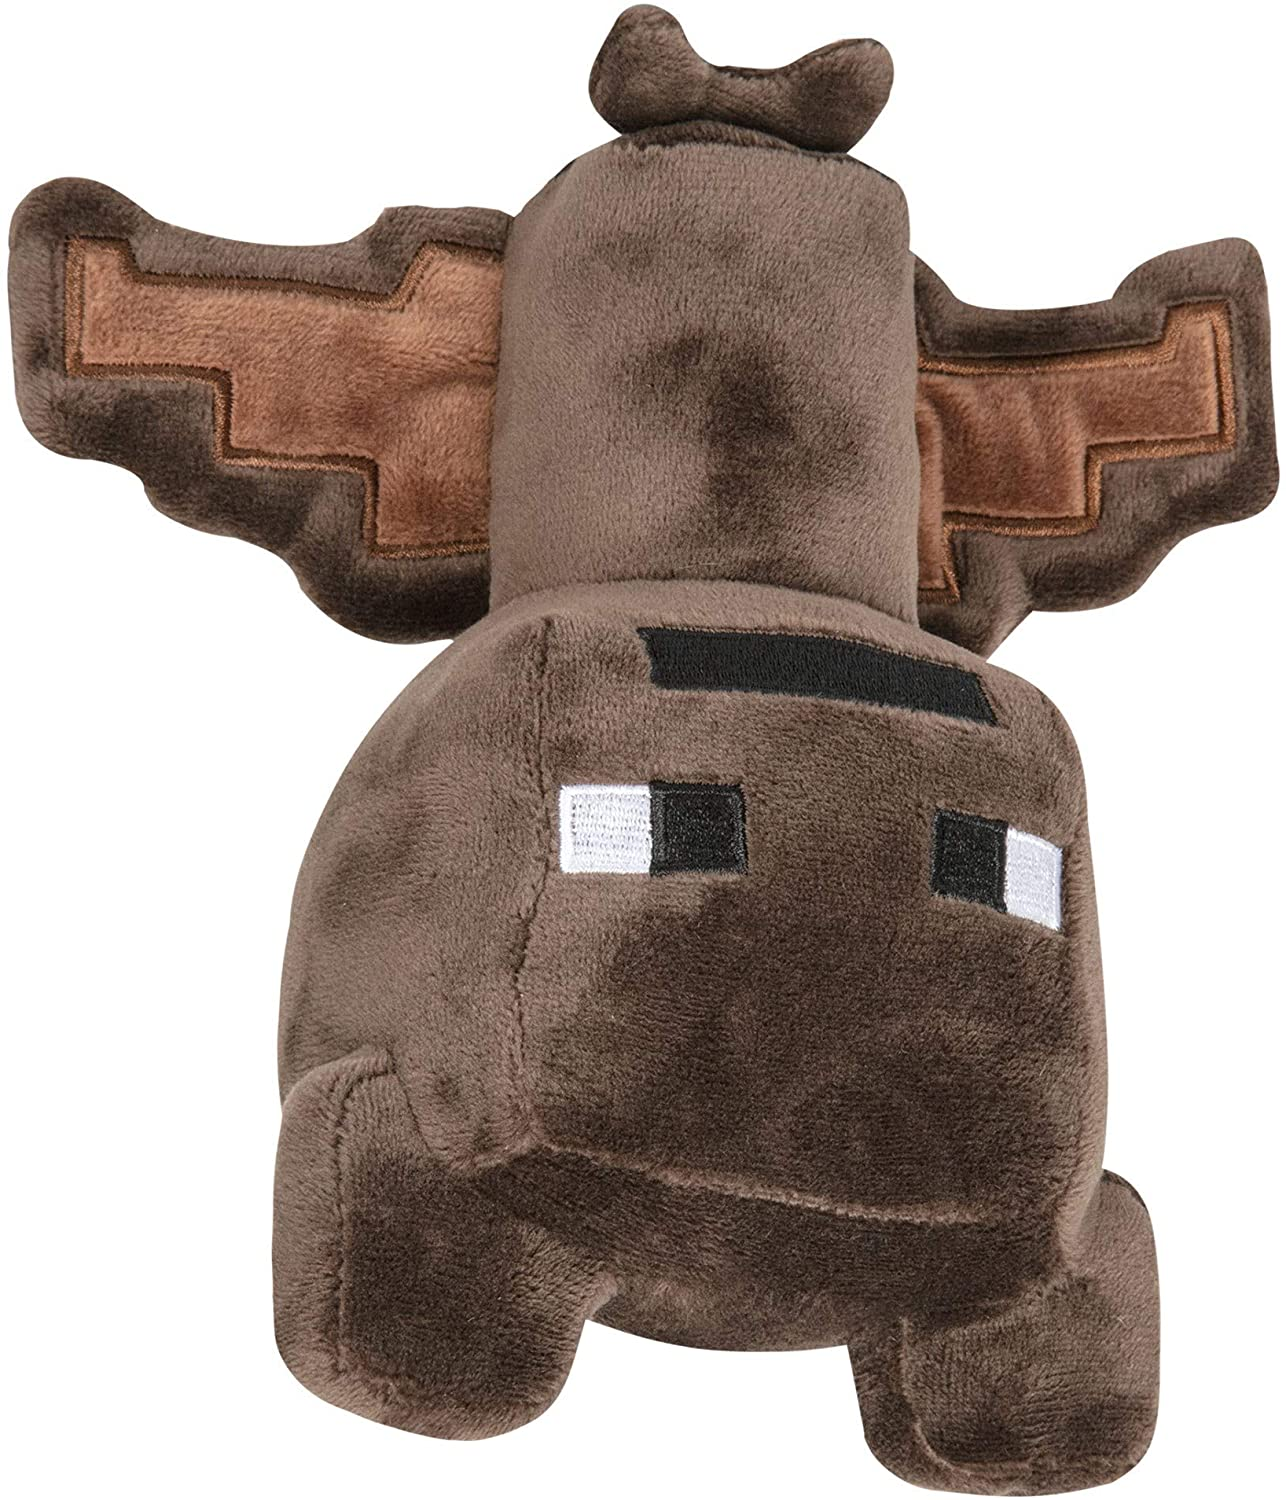 JINX Minecraft Happy Explorer Bat Plush Stuffed Toy, Brown, 7